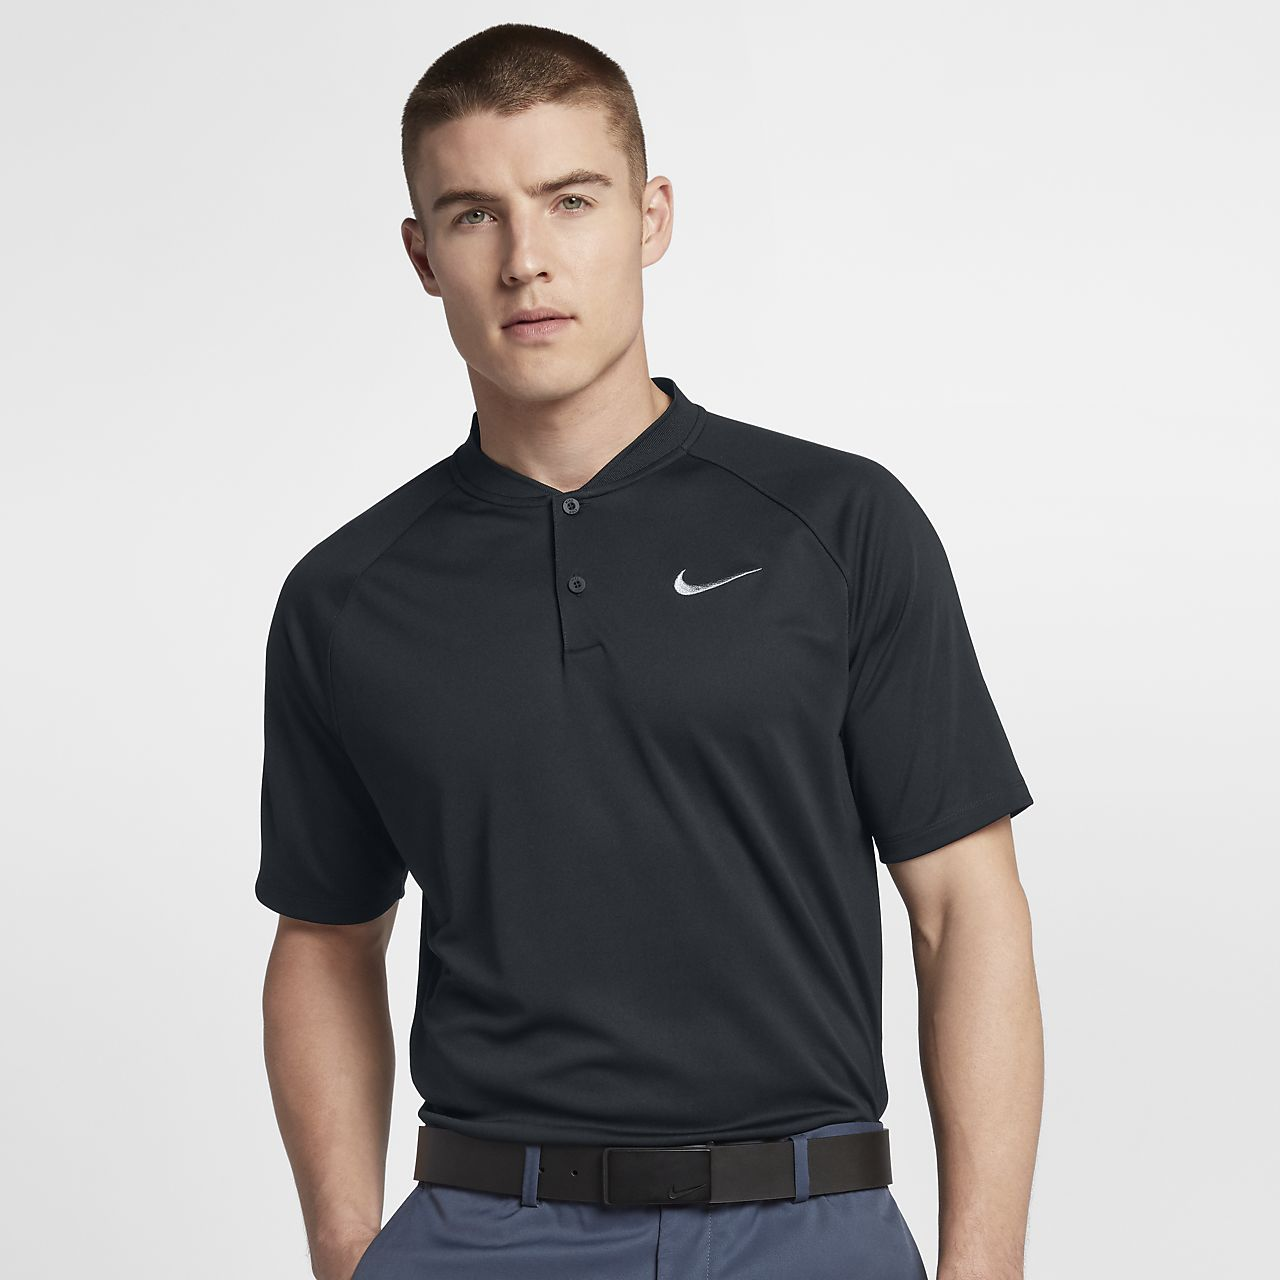 Nike Dri-FIT Momentum Men's Standard Fit Golf Polo